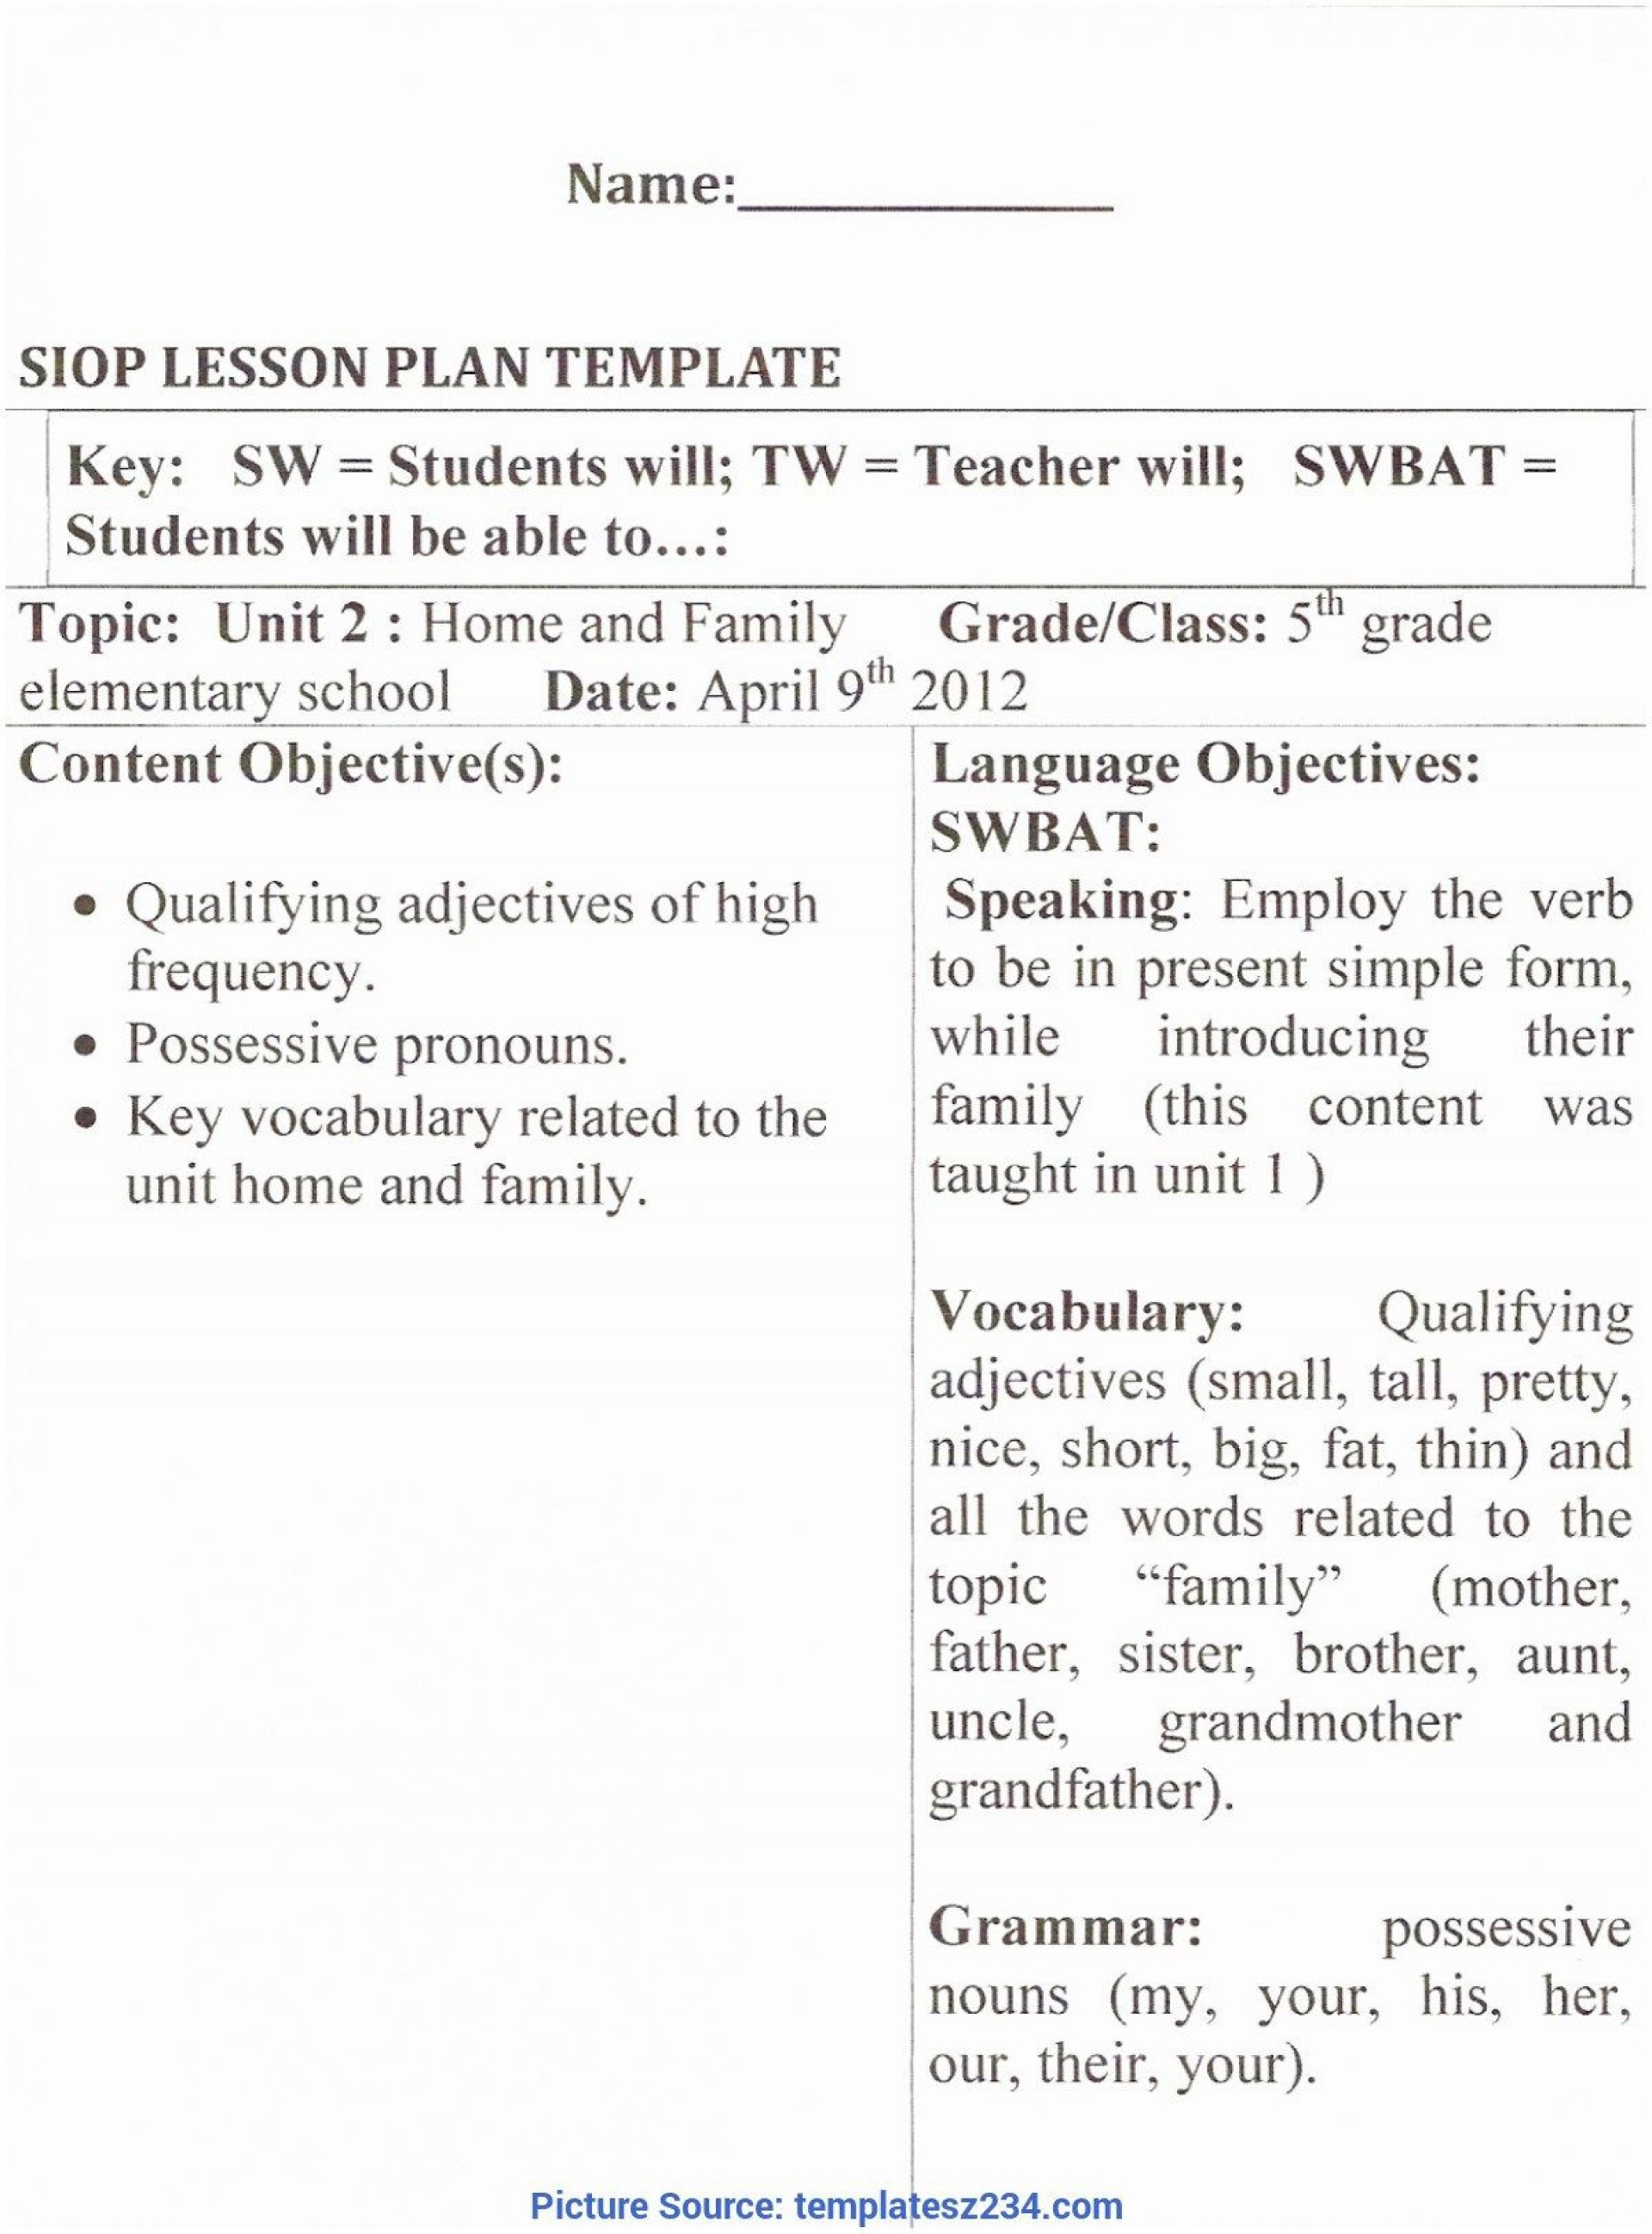 009 Impressive Siop Lesson Plan Template 1 Example Photo 1920